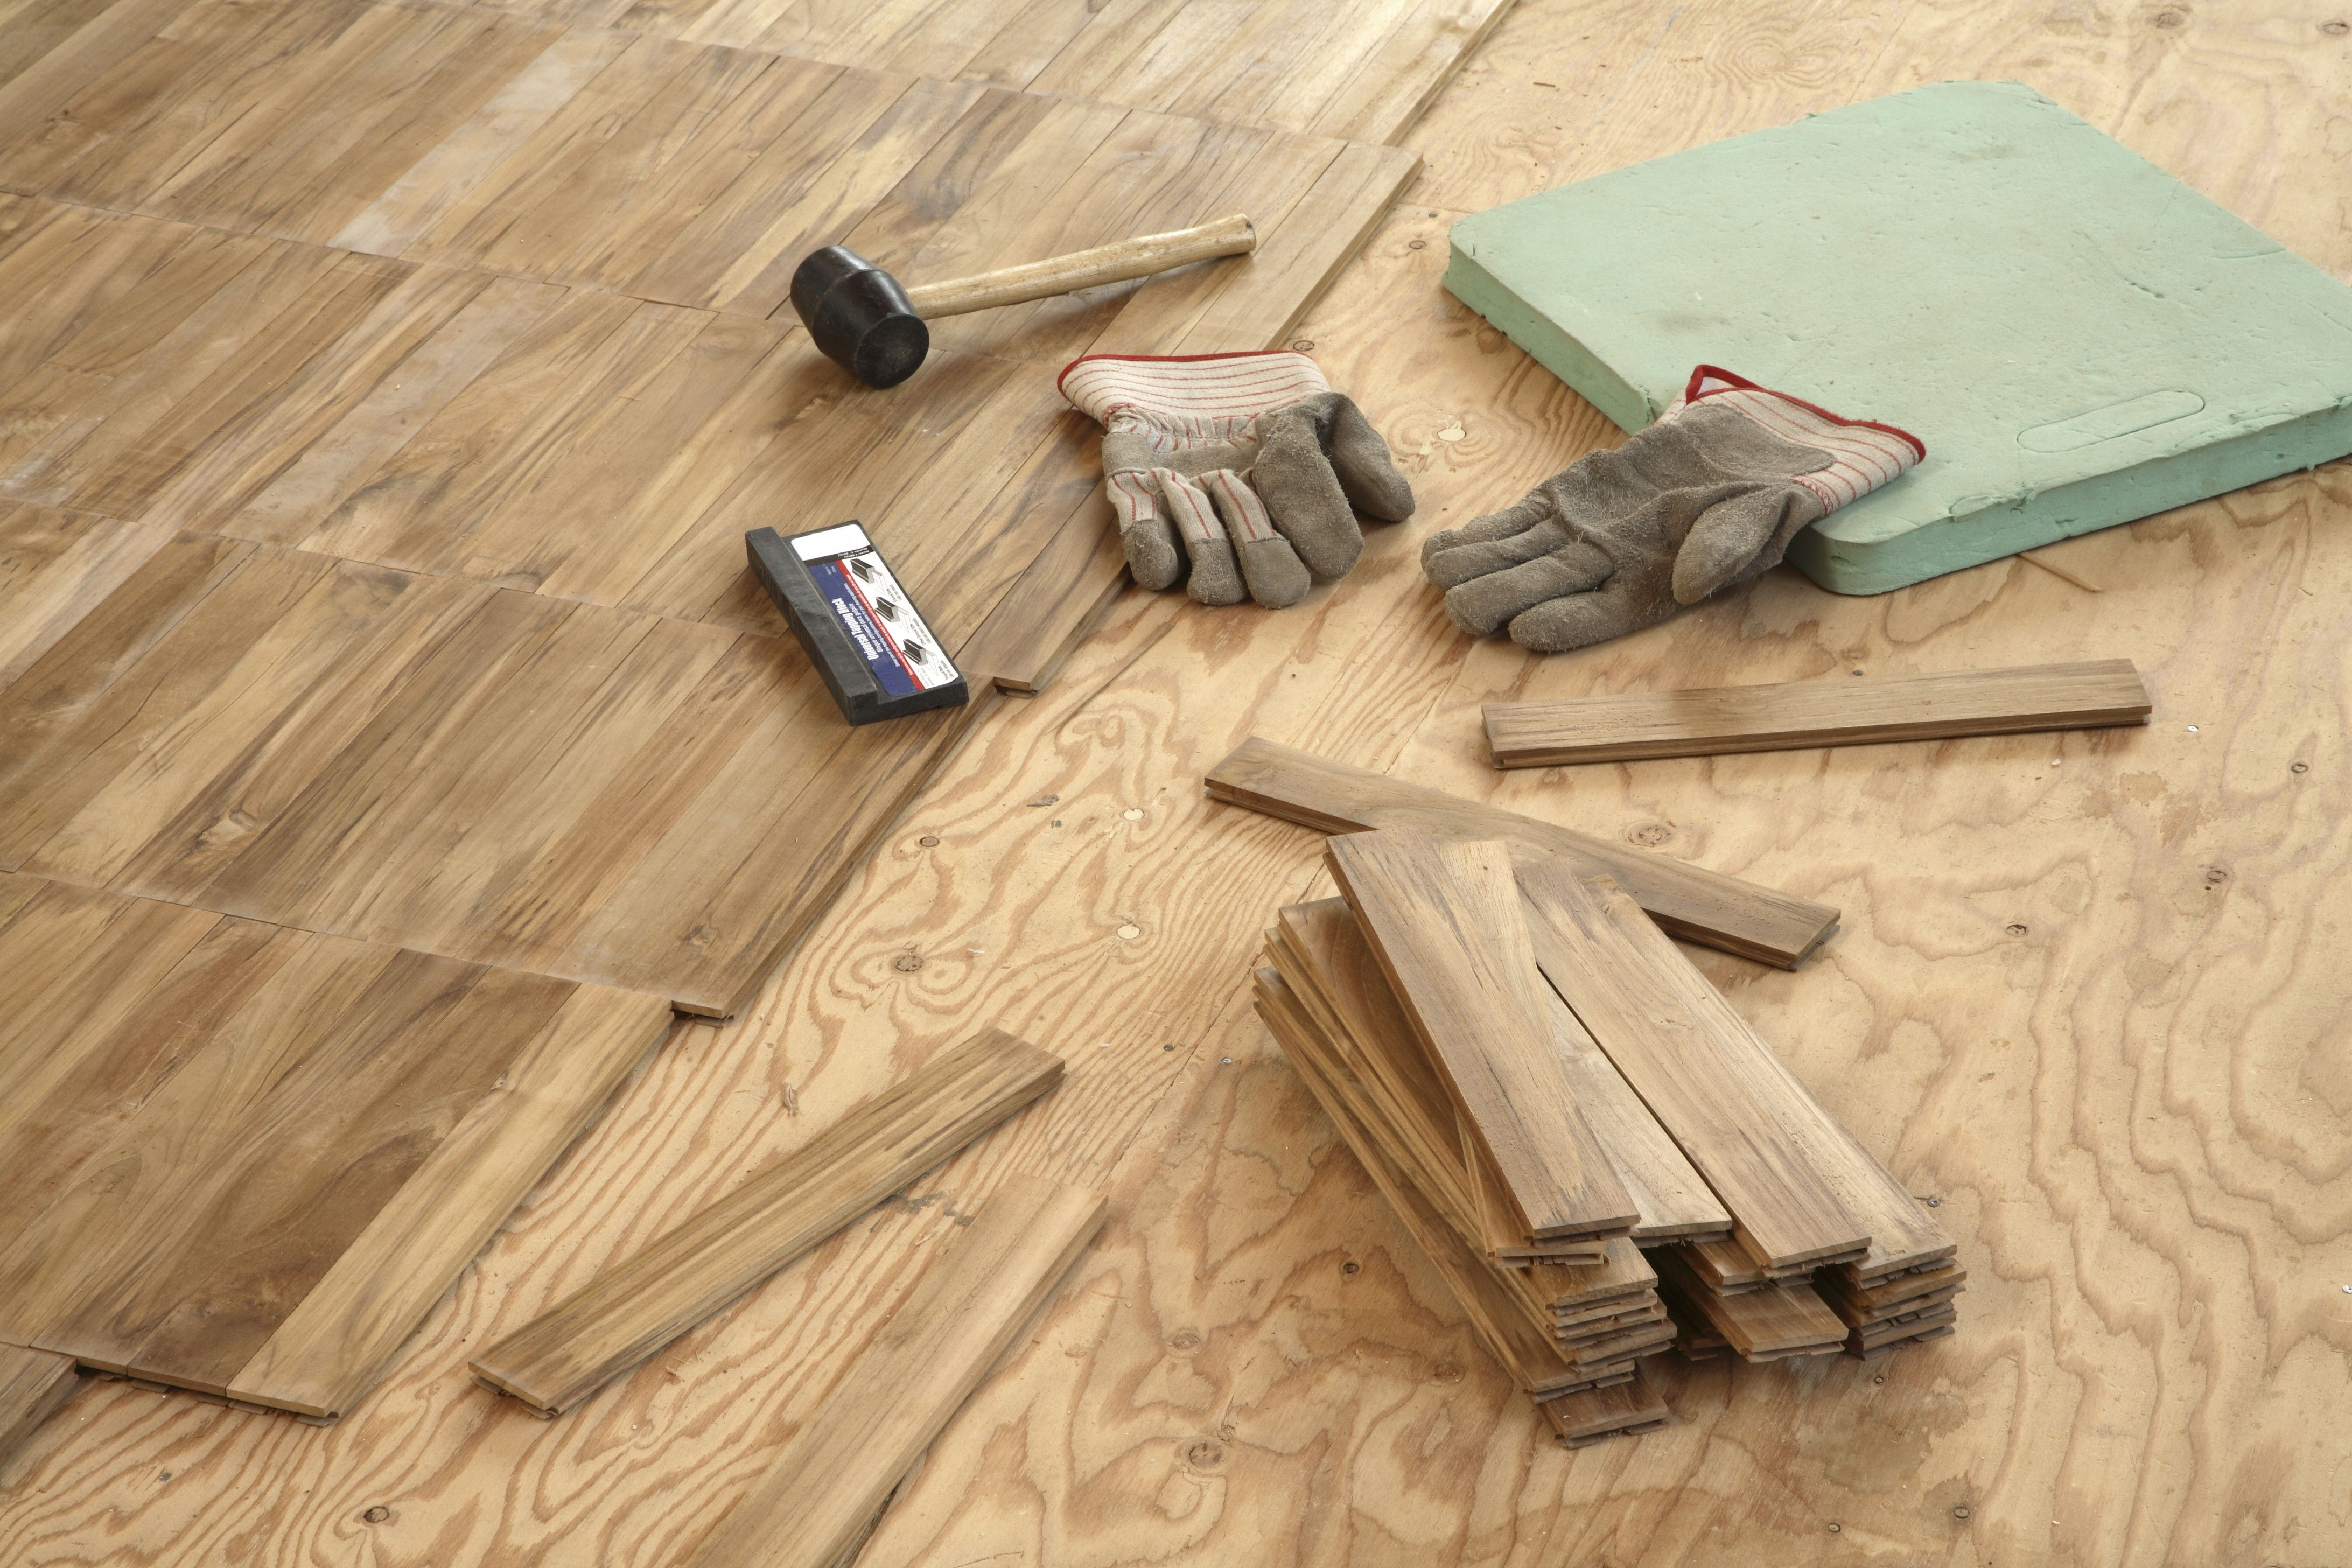 hardwood floor refinishing toledo of plywood underlayment pros and cons types and brands pertaining to plywoodunderlaymentunderwoodflooring 5ac24fbcae9ab8003781af25